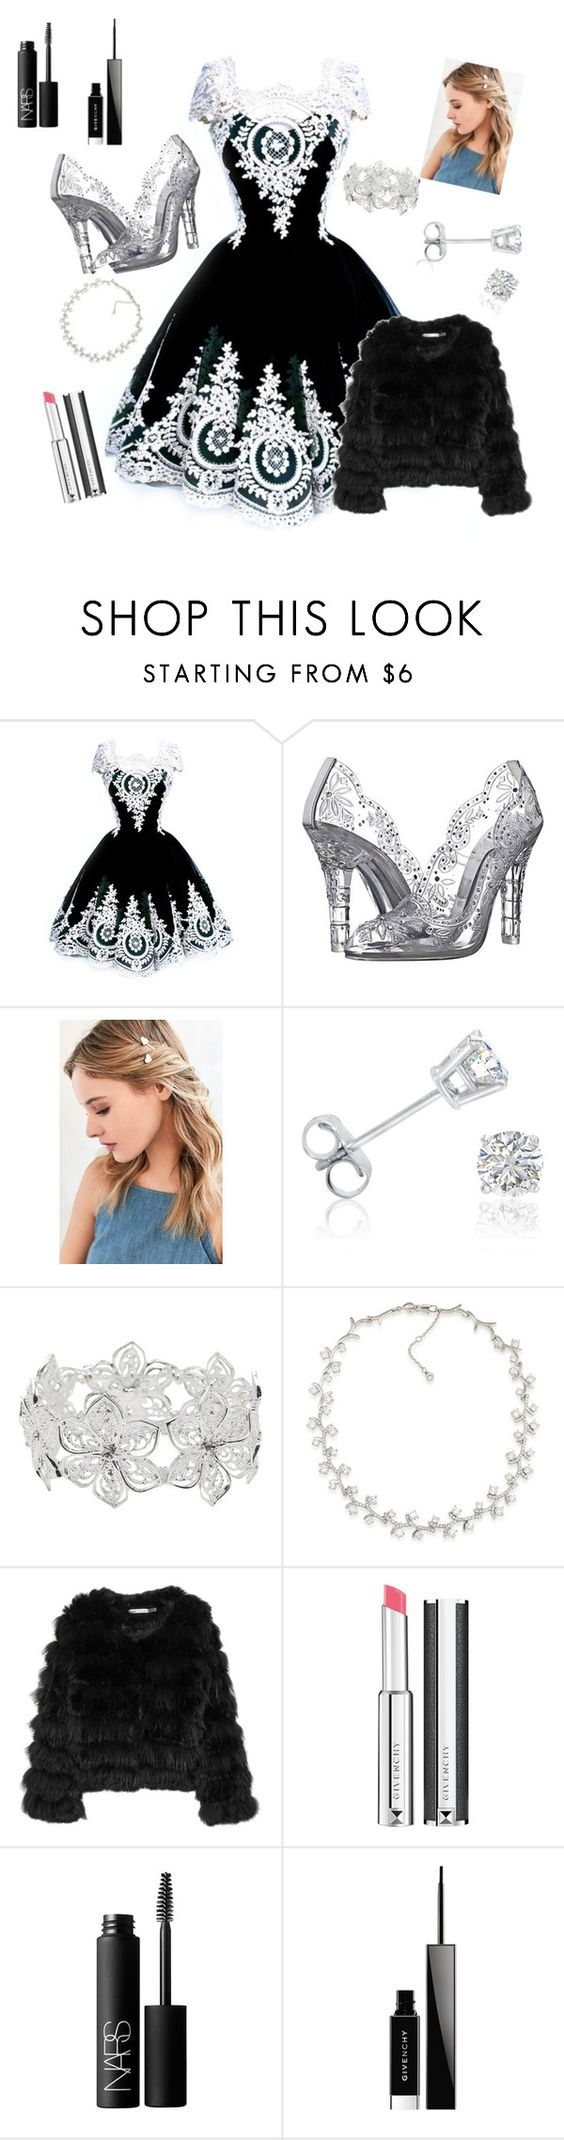 """""""Wedding ceremony"""" by yassyyess ❤ liked on Polyvore featuring Dolce&Gabbana, Urban Outfitters, Amanda Rose Collection, M&Co, Carolee, Alice + Olivia, Givenchy and NARS Cosmetics"""